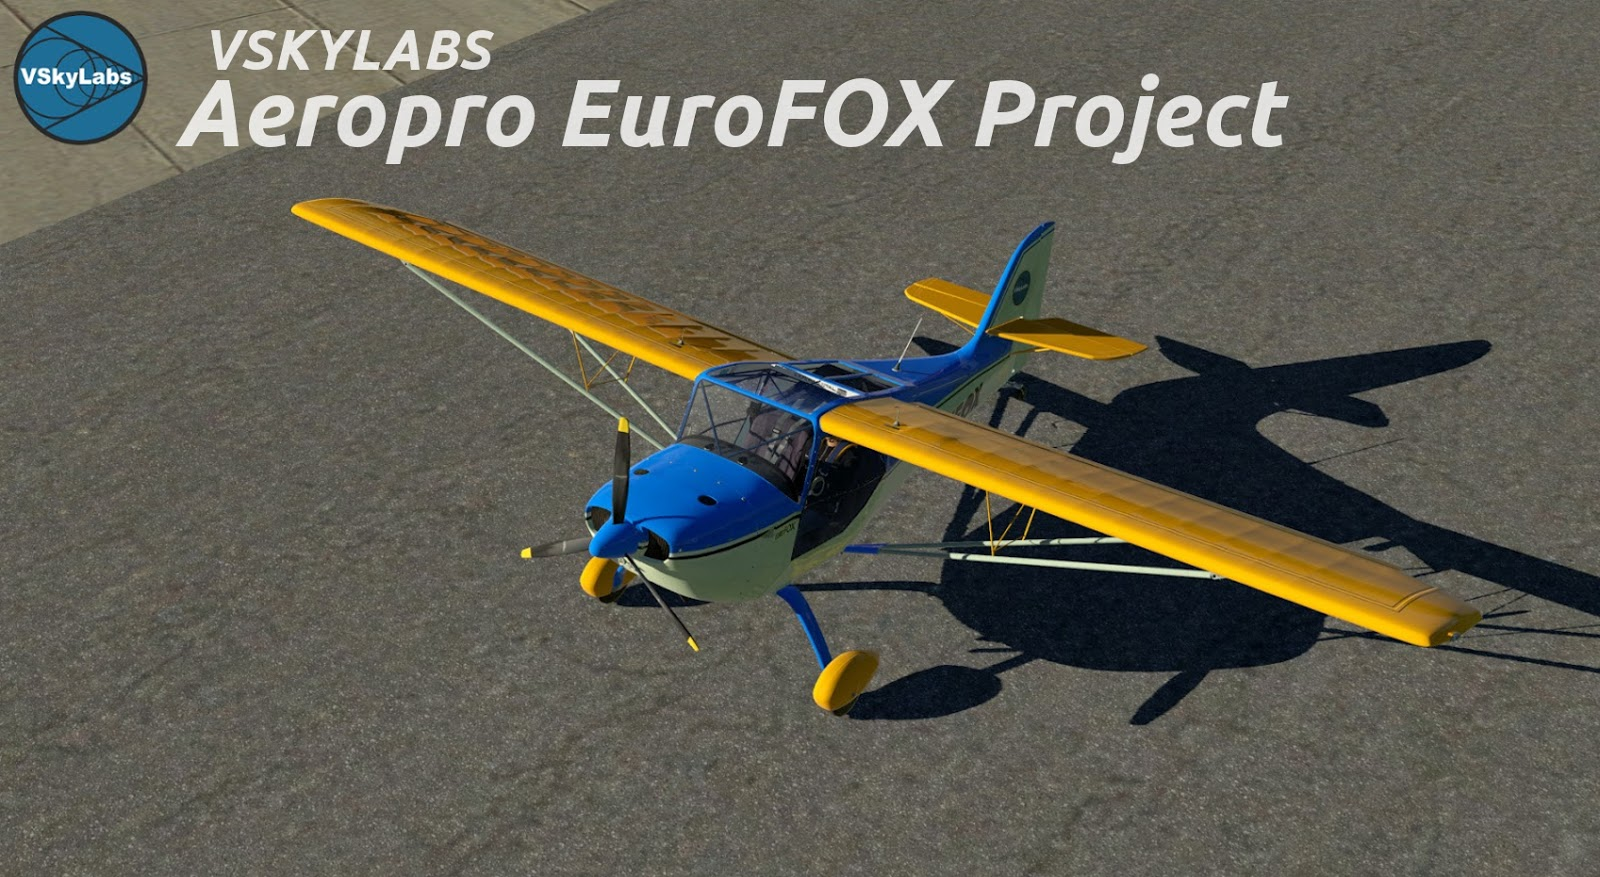 The VSKYLABS Aeropro EuroFOX